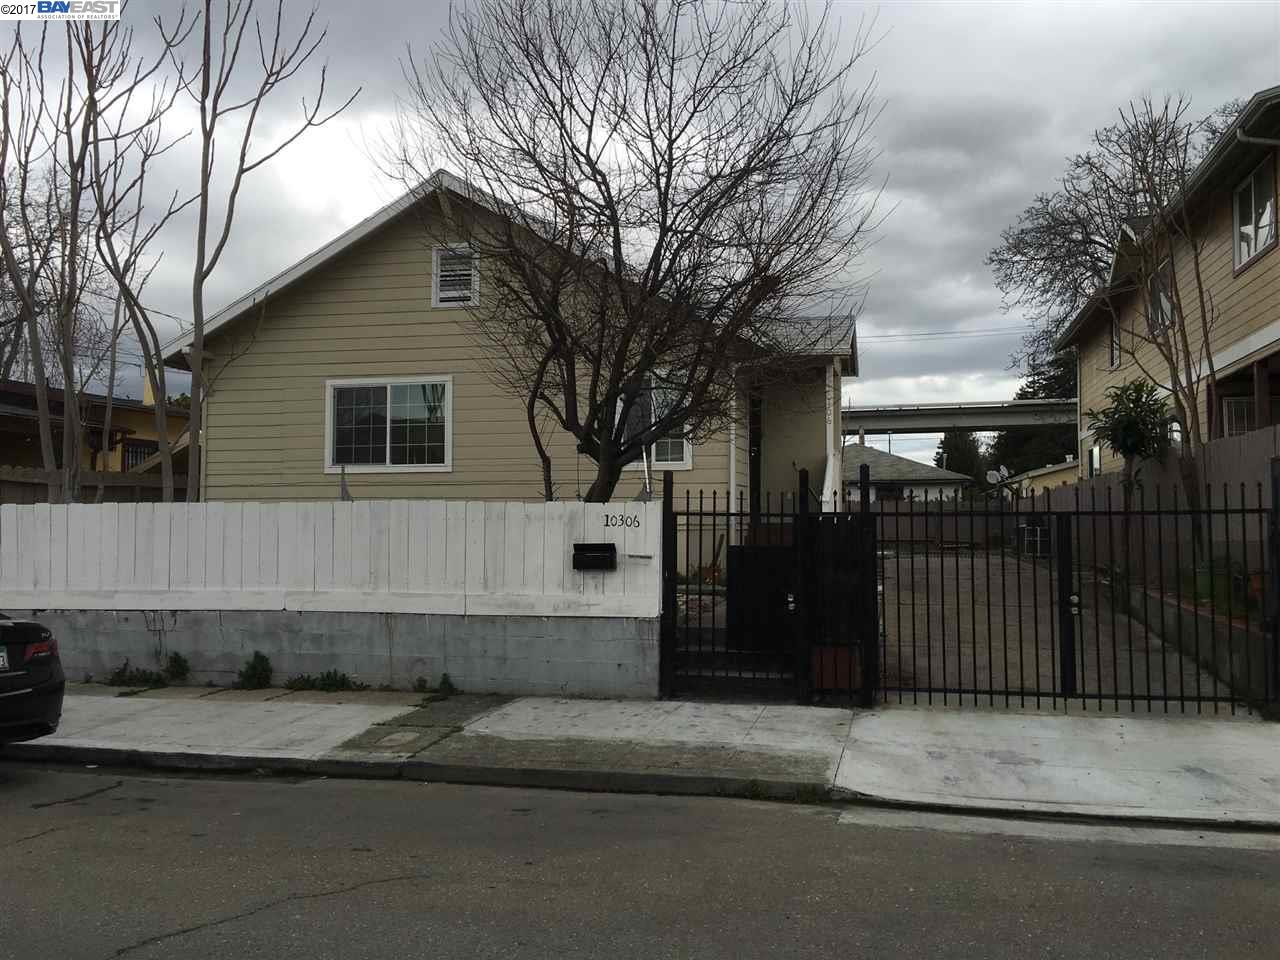 10306 PIPPIN ST | OAKLAND |  | 94603